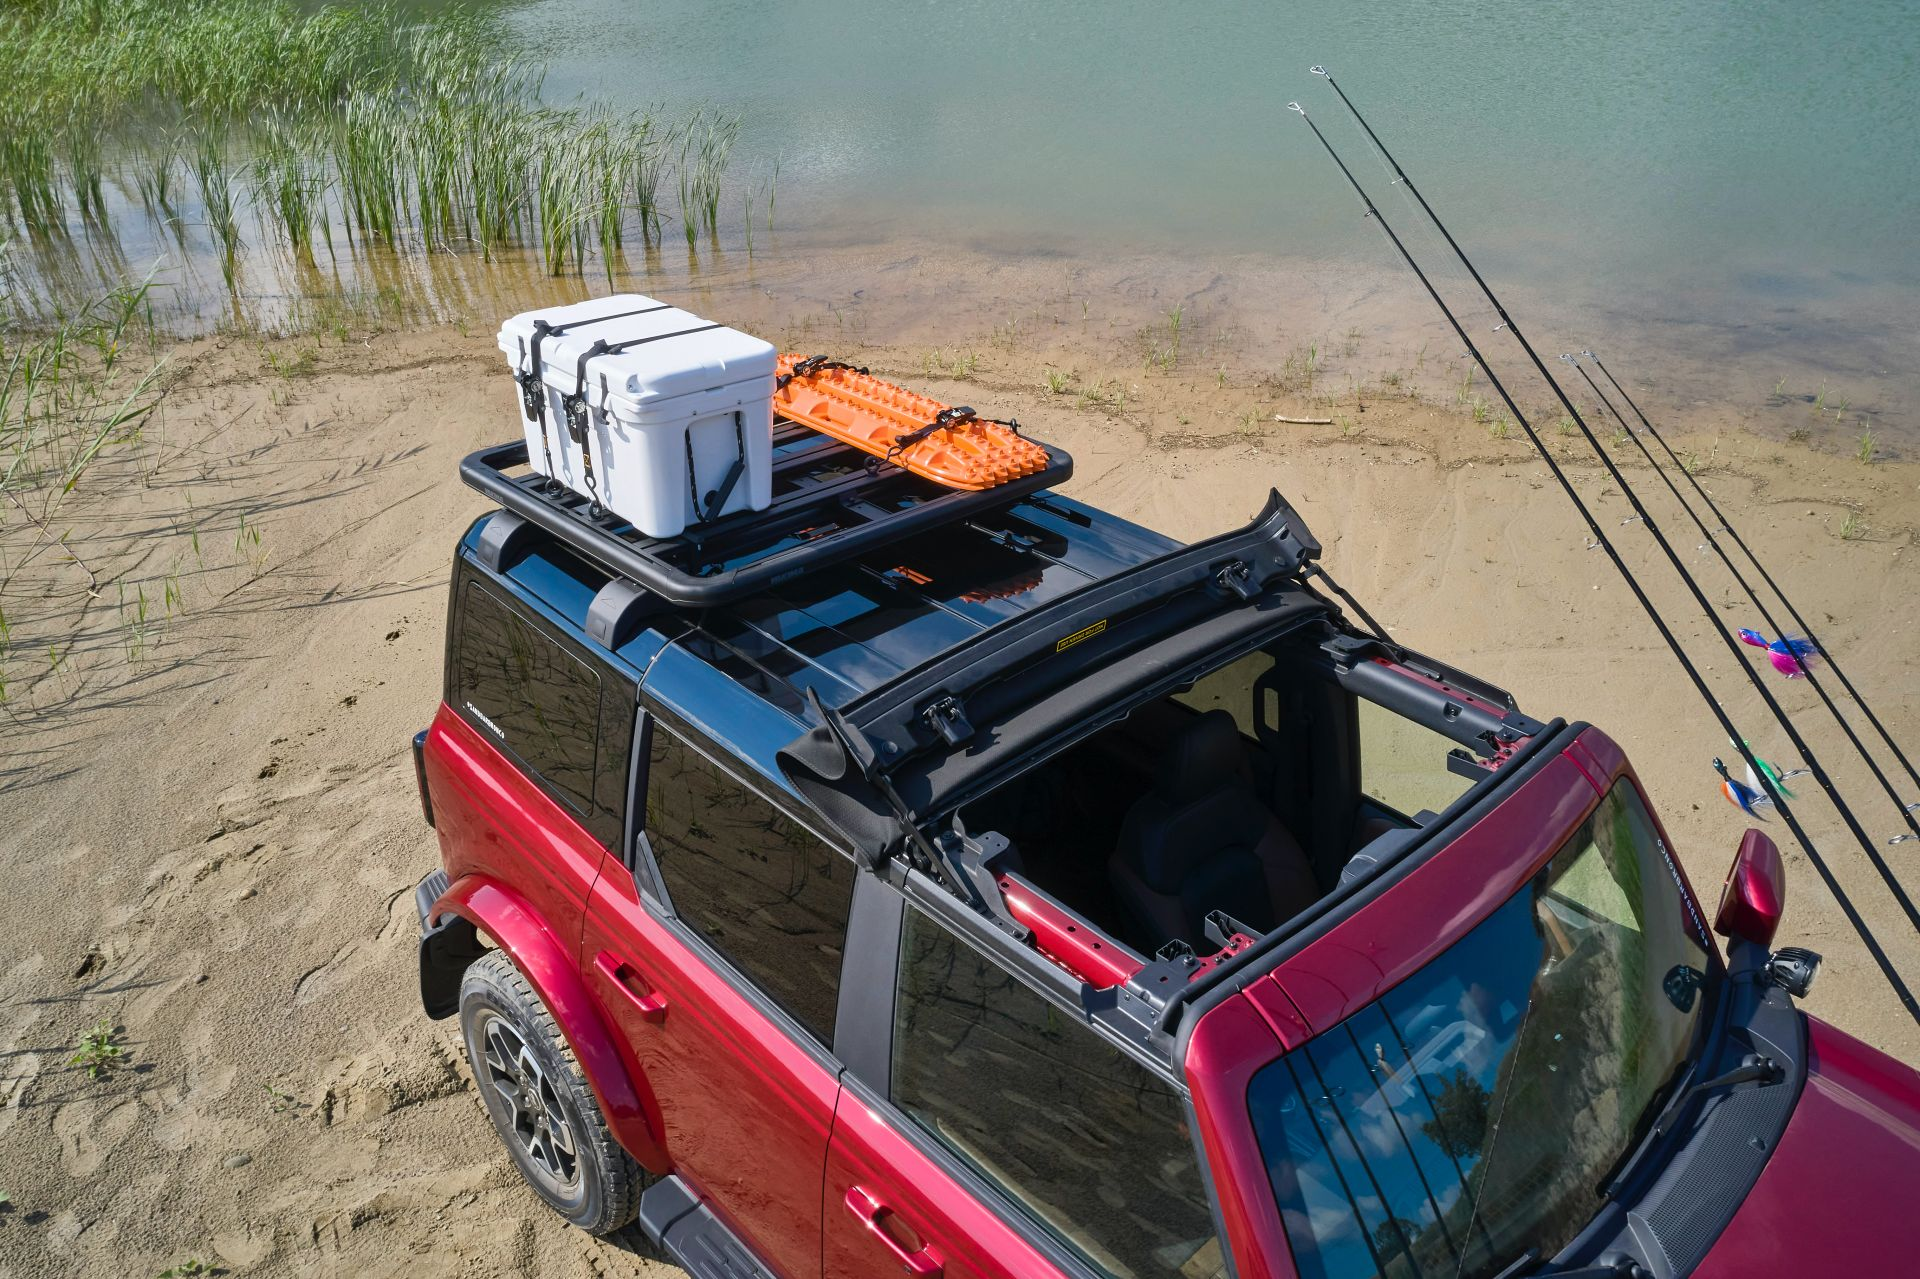 Ford-Bronco-4-Door-Outer-Banks-Fishing-Guide-Concept-2